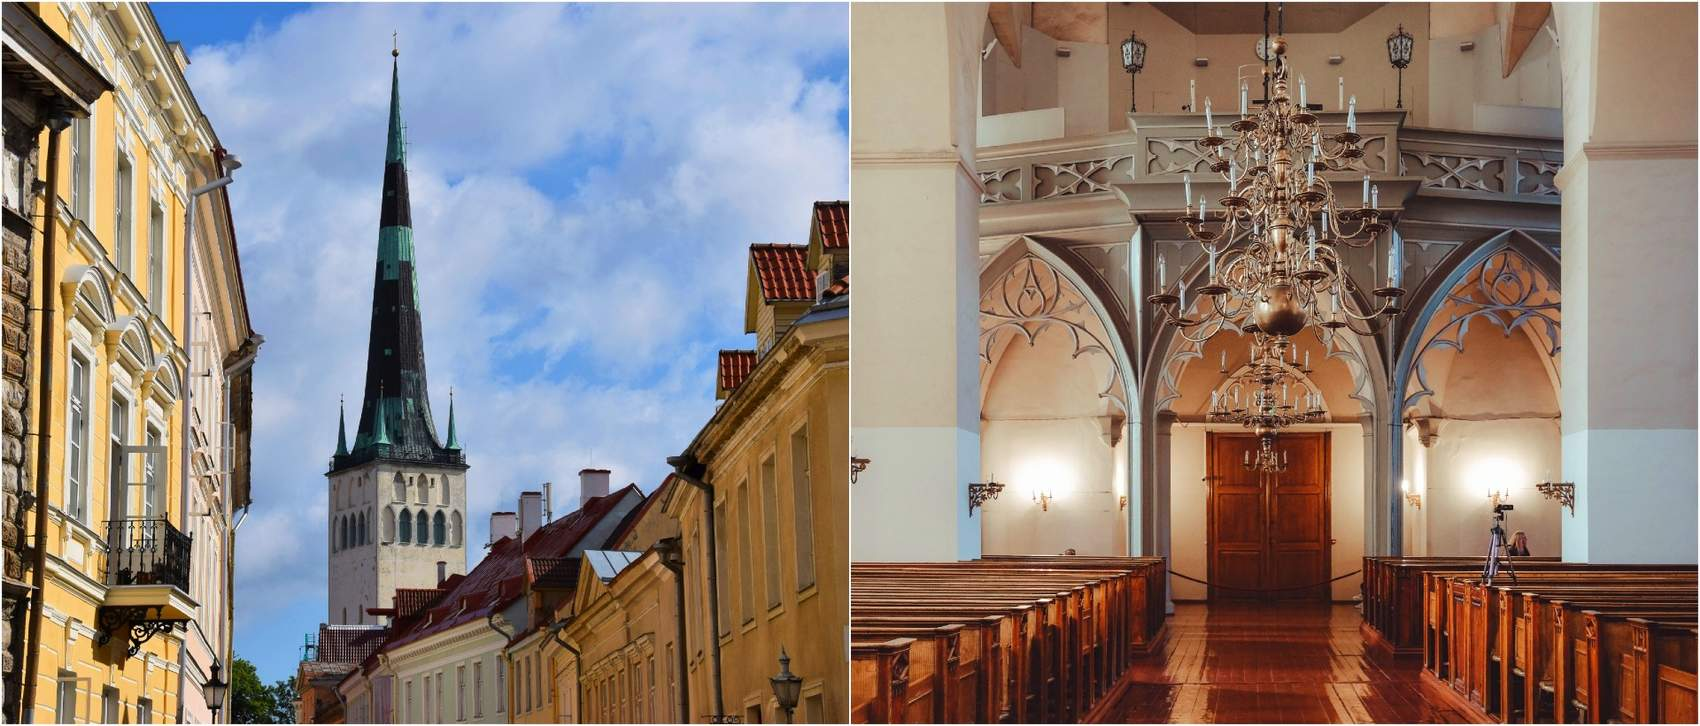 Collage of the St. Olaf Church in Tallinn, Estonia Photo: Kadi-Liis Koppel